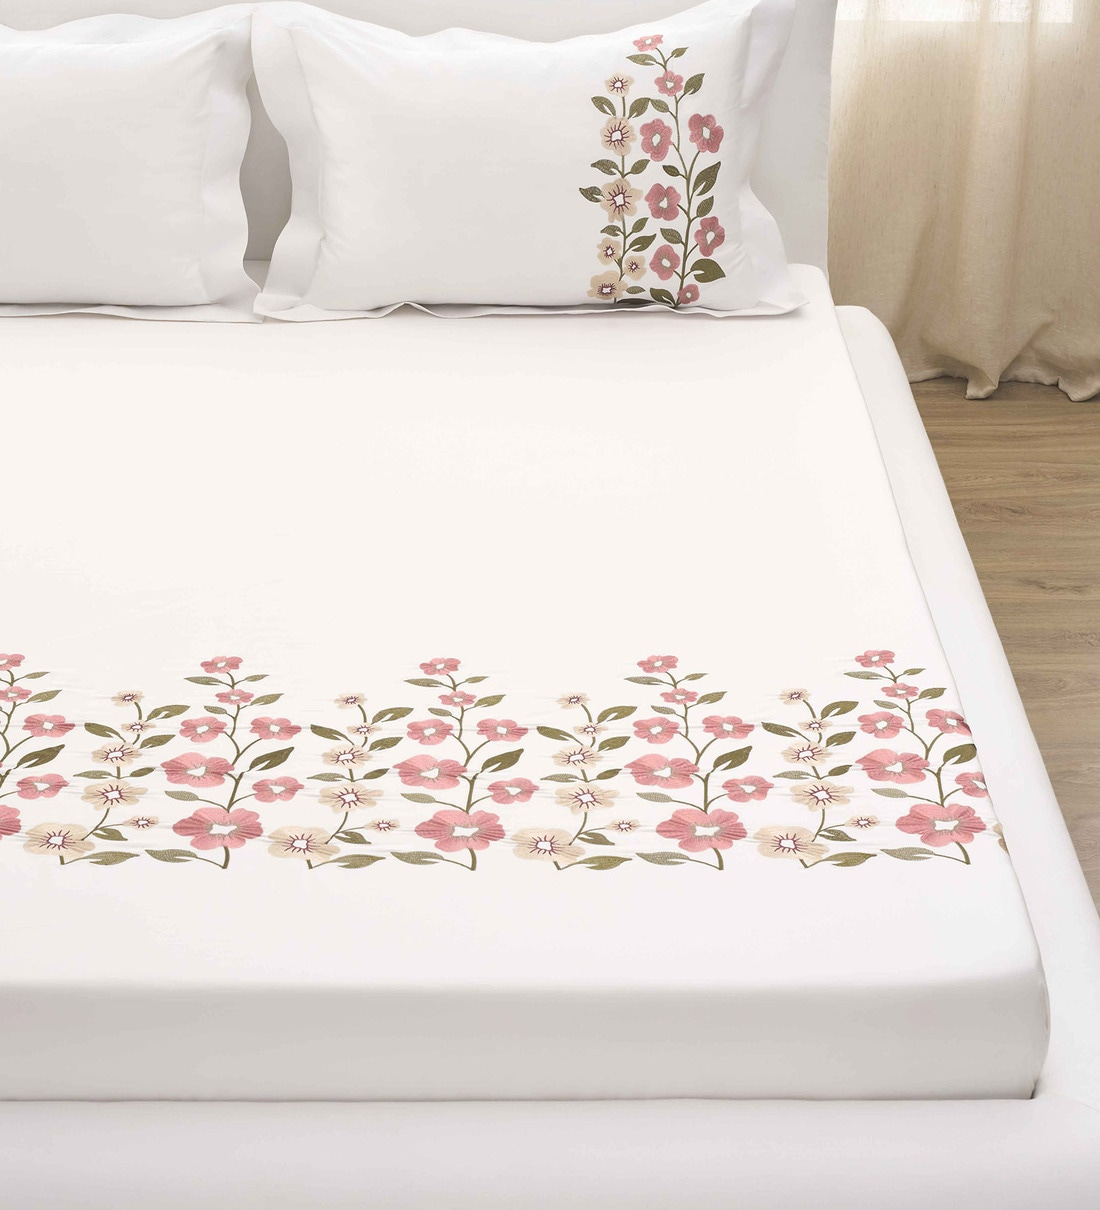 Buy Premium Embroidery Cotton 400 Tc King Size Bedsheet With 2 Pillow Covers By Ddecor Live Beautiful Online Floral Double Bed Sheets Bed Sheets Furnishings Pepperfry Product